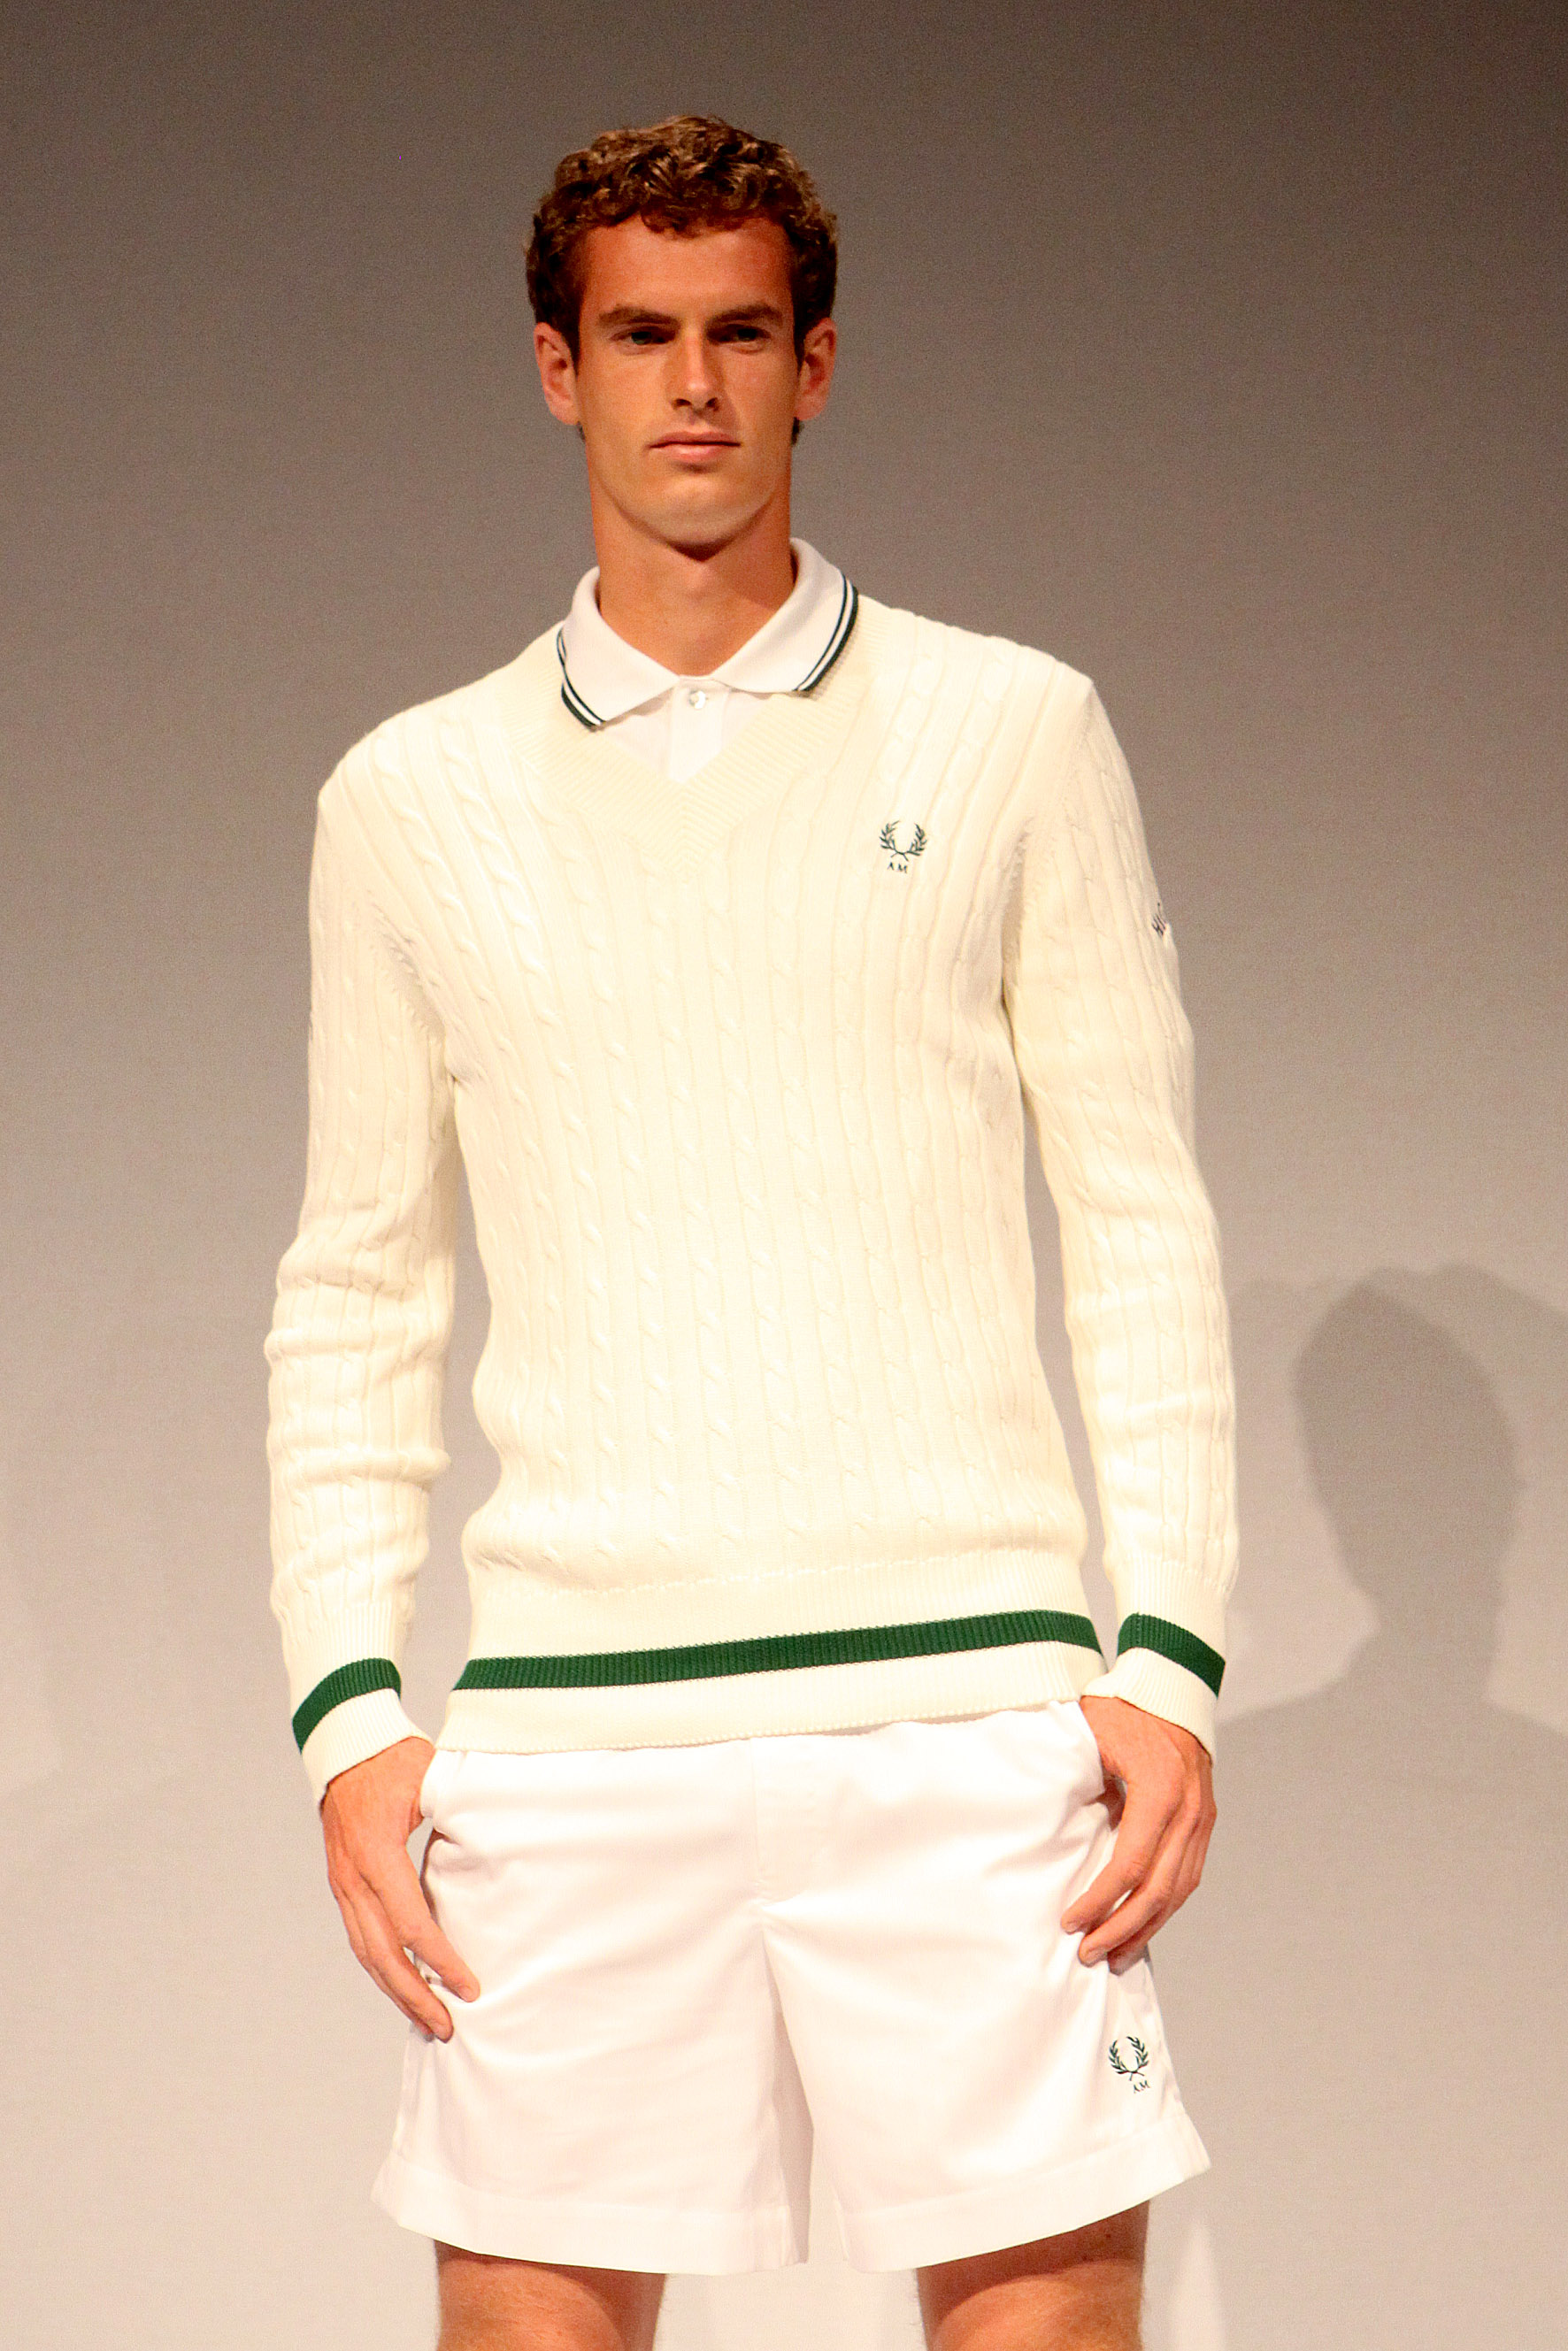 Fred Perry tries to put Murray in a sweater.